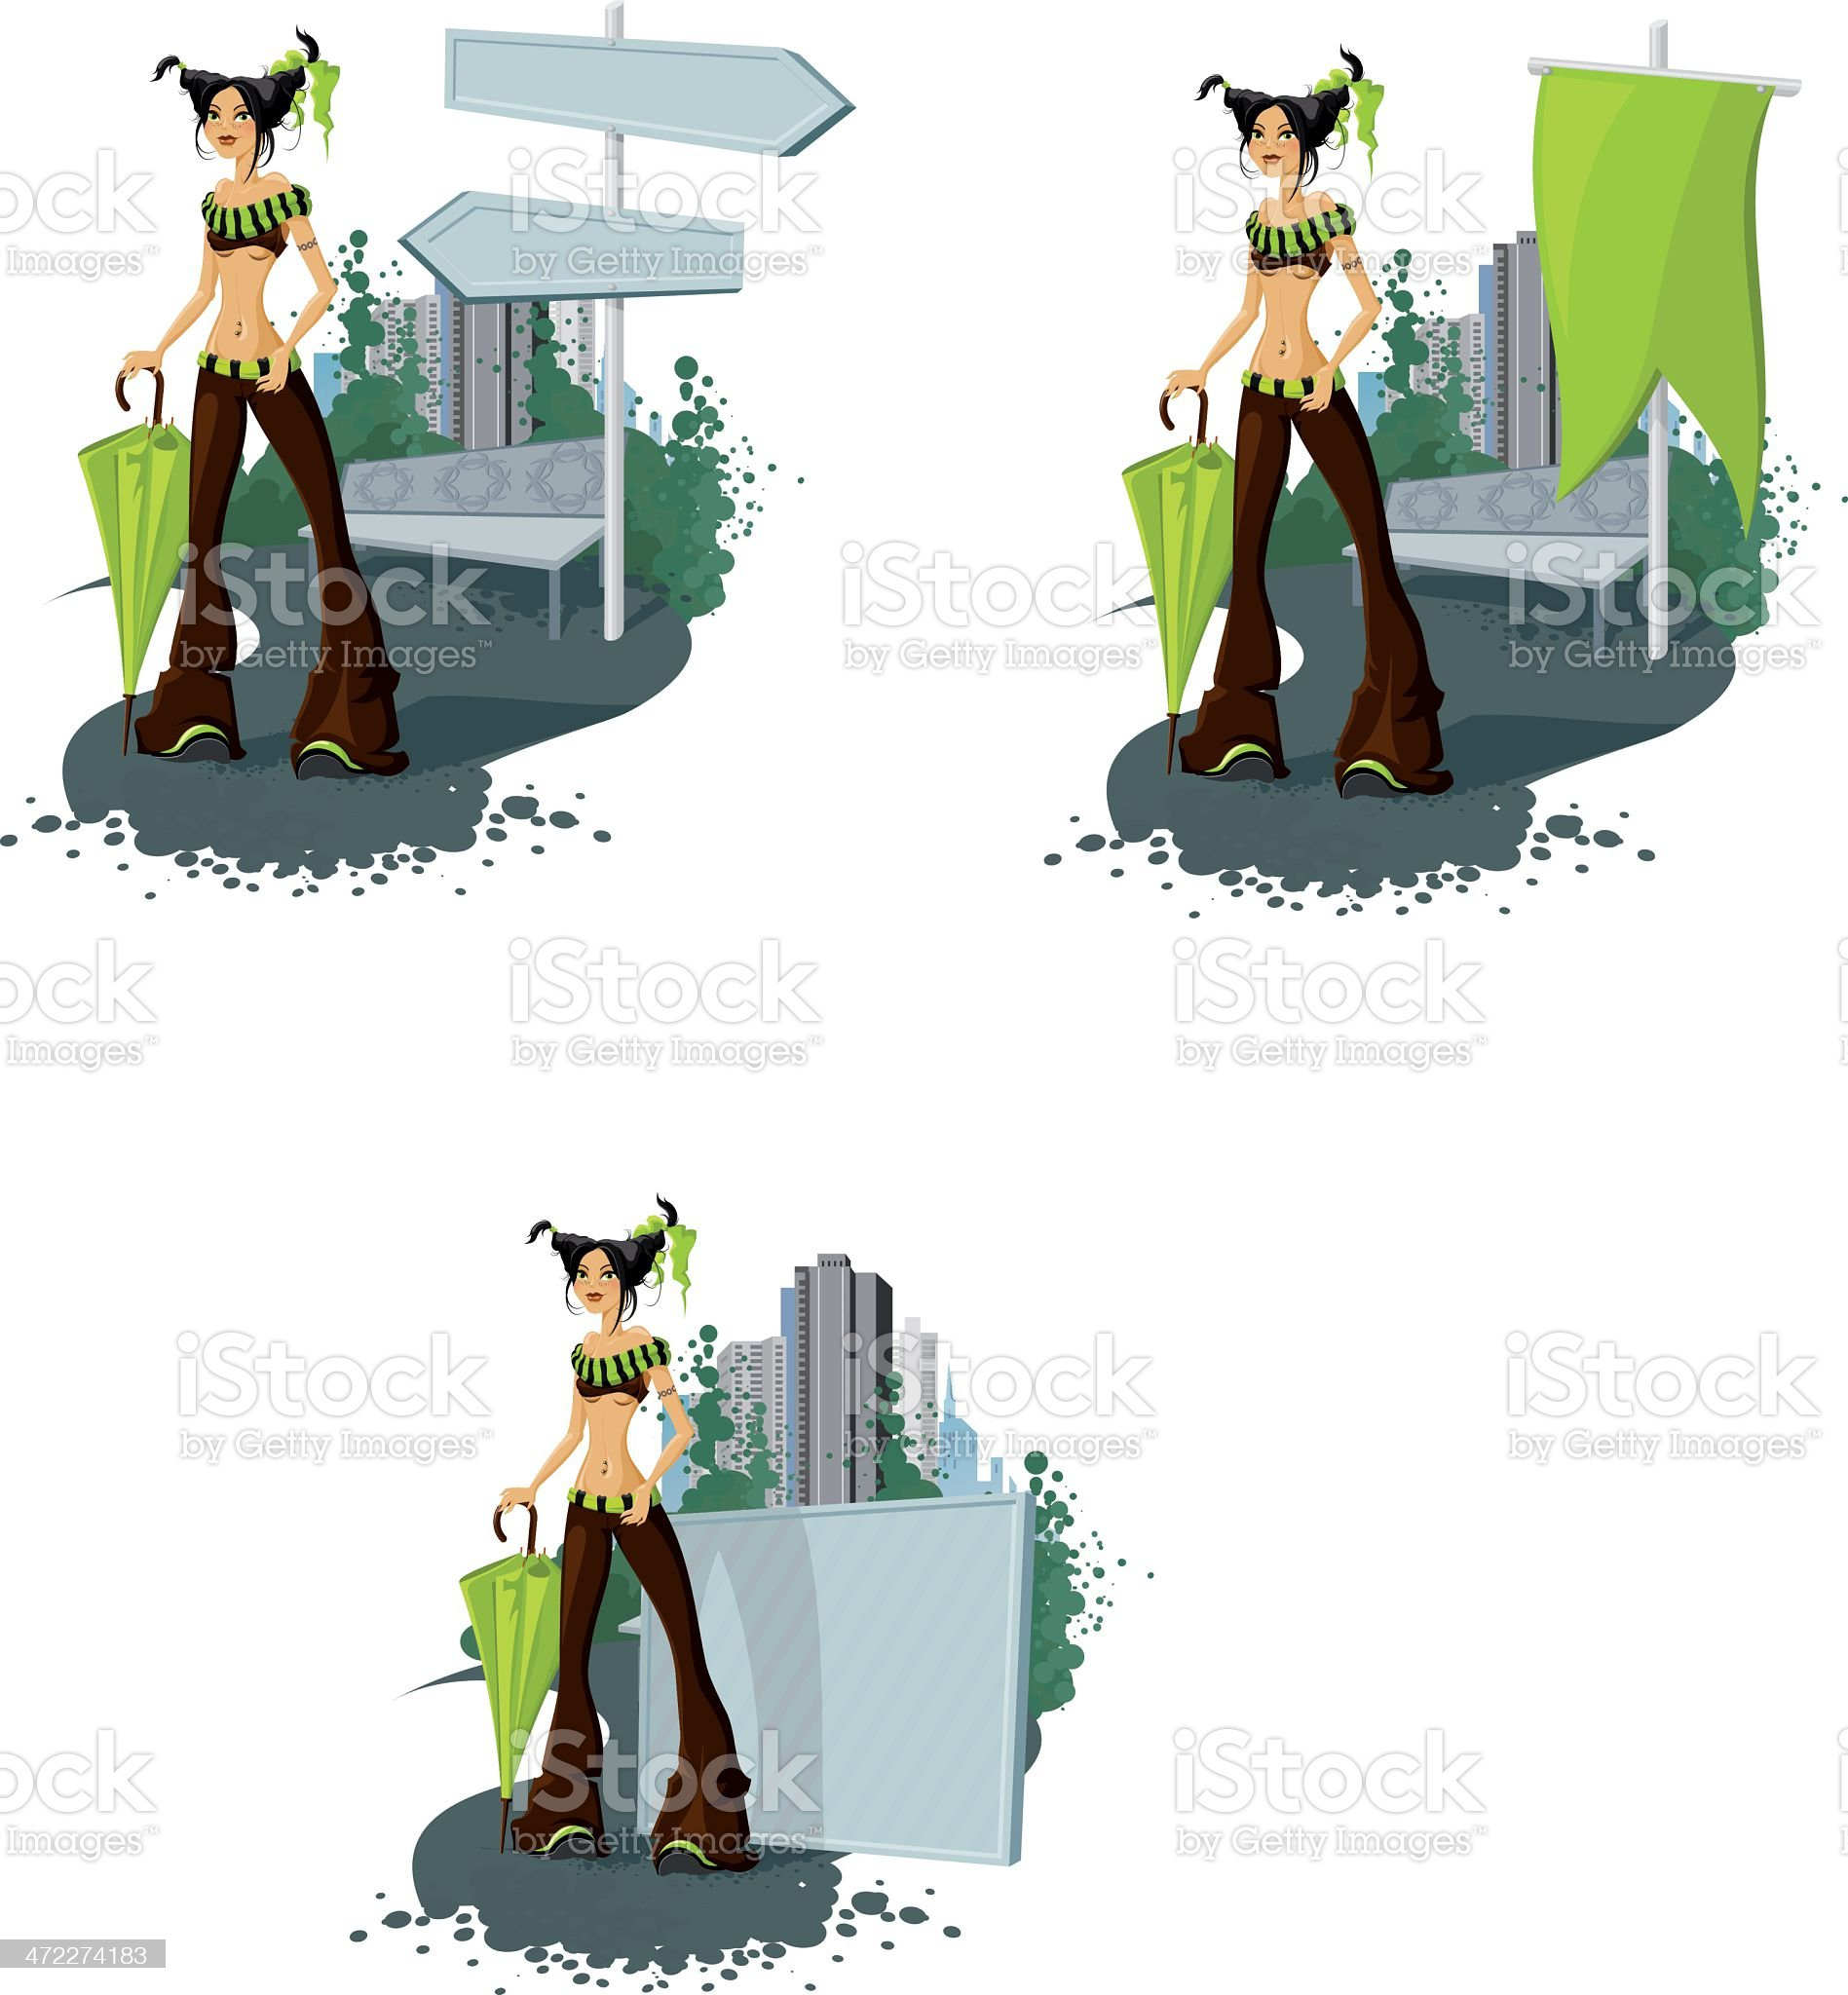 Pippi with banners royalty-free stock vector art